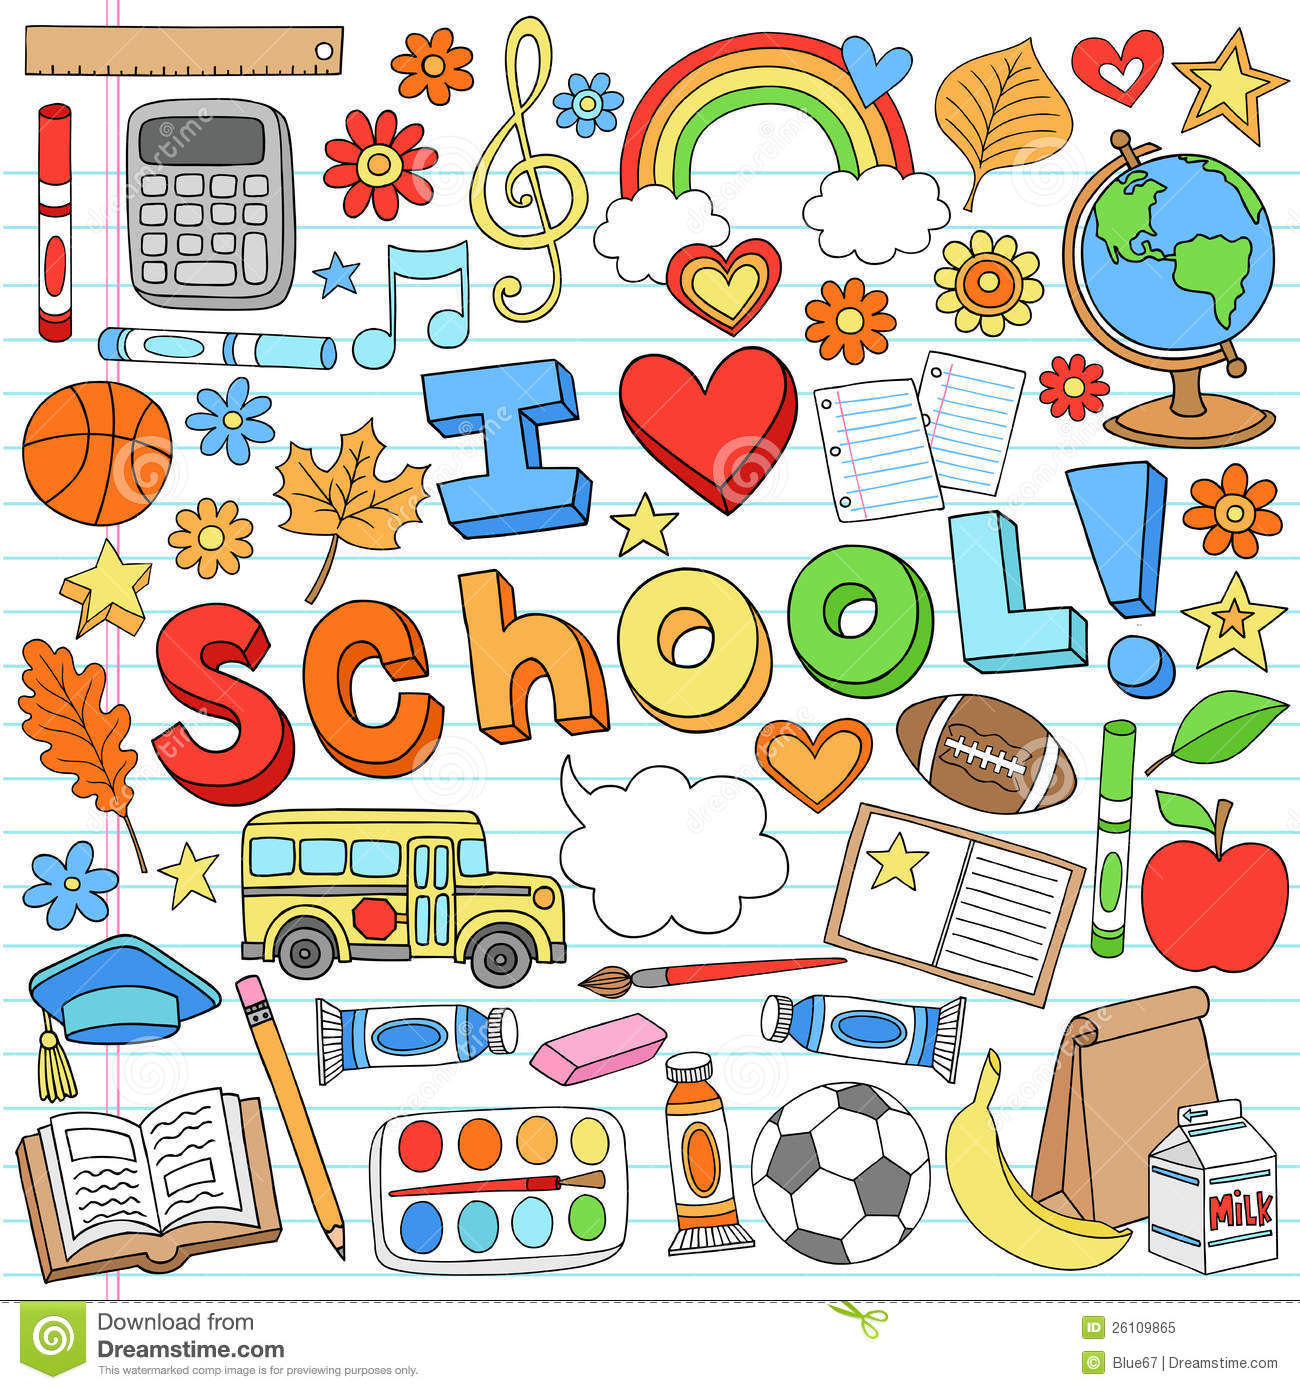 Classroom Design Elements ~ I love school supplies vector design elements stock